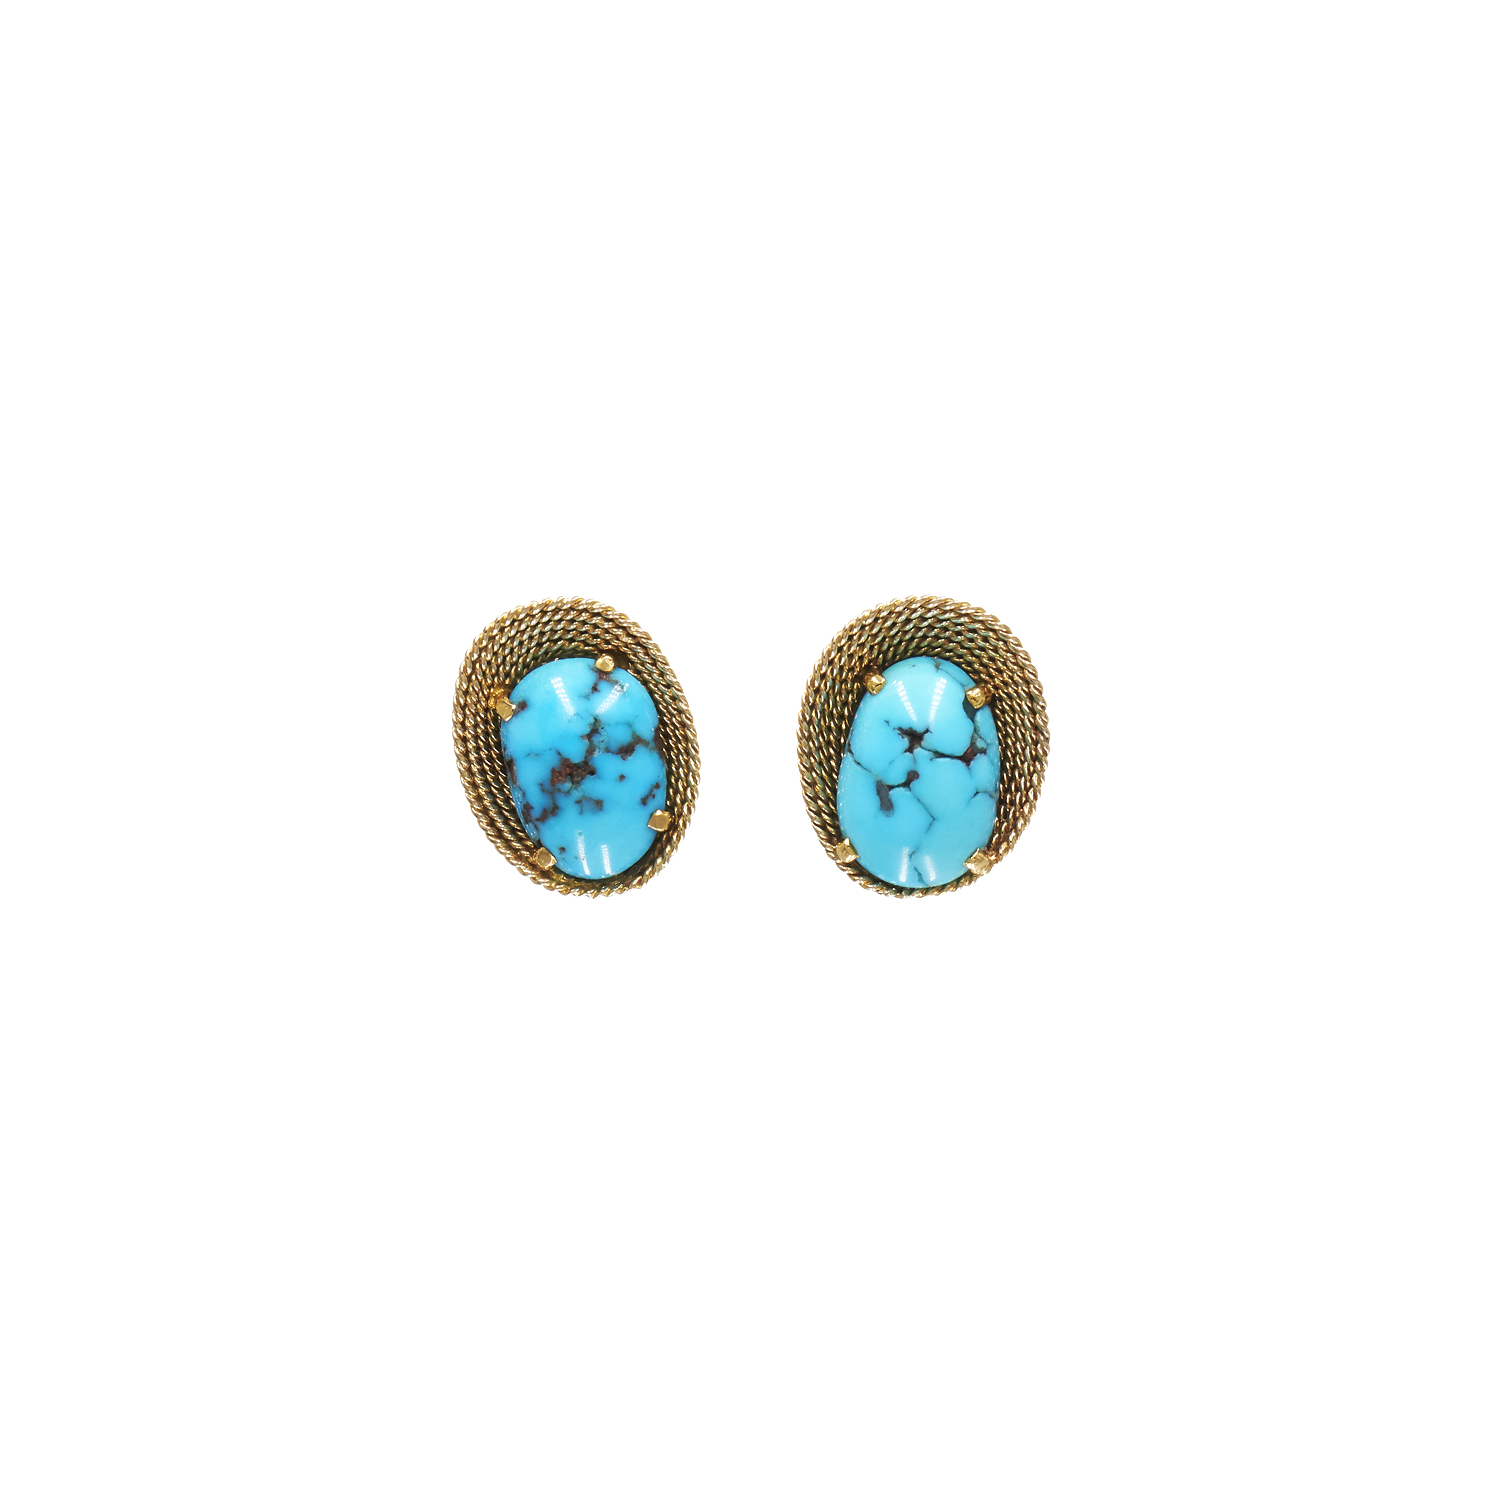 18K Yellow Gold and Turquoise Wirework Earrings by Sterlé Style E-32665-FL-0-0